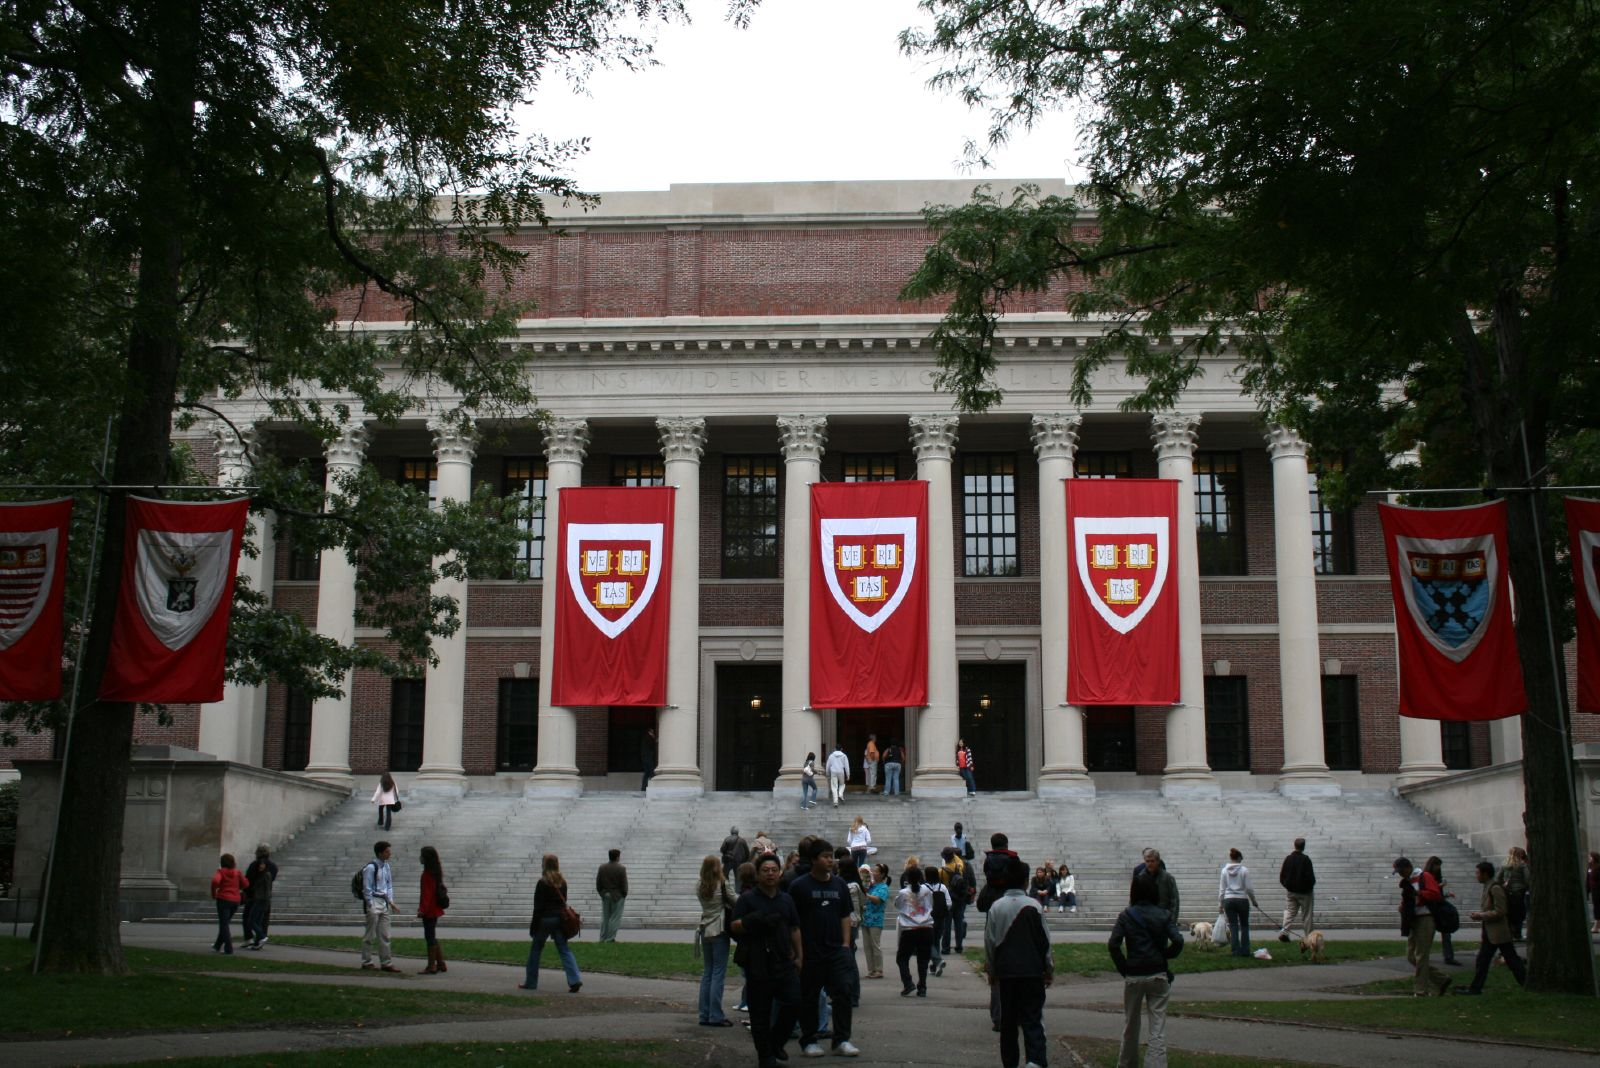 Journal subscriptions are so expensive, even Harvard University can't afford them.